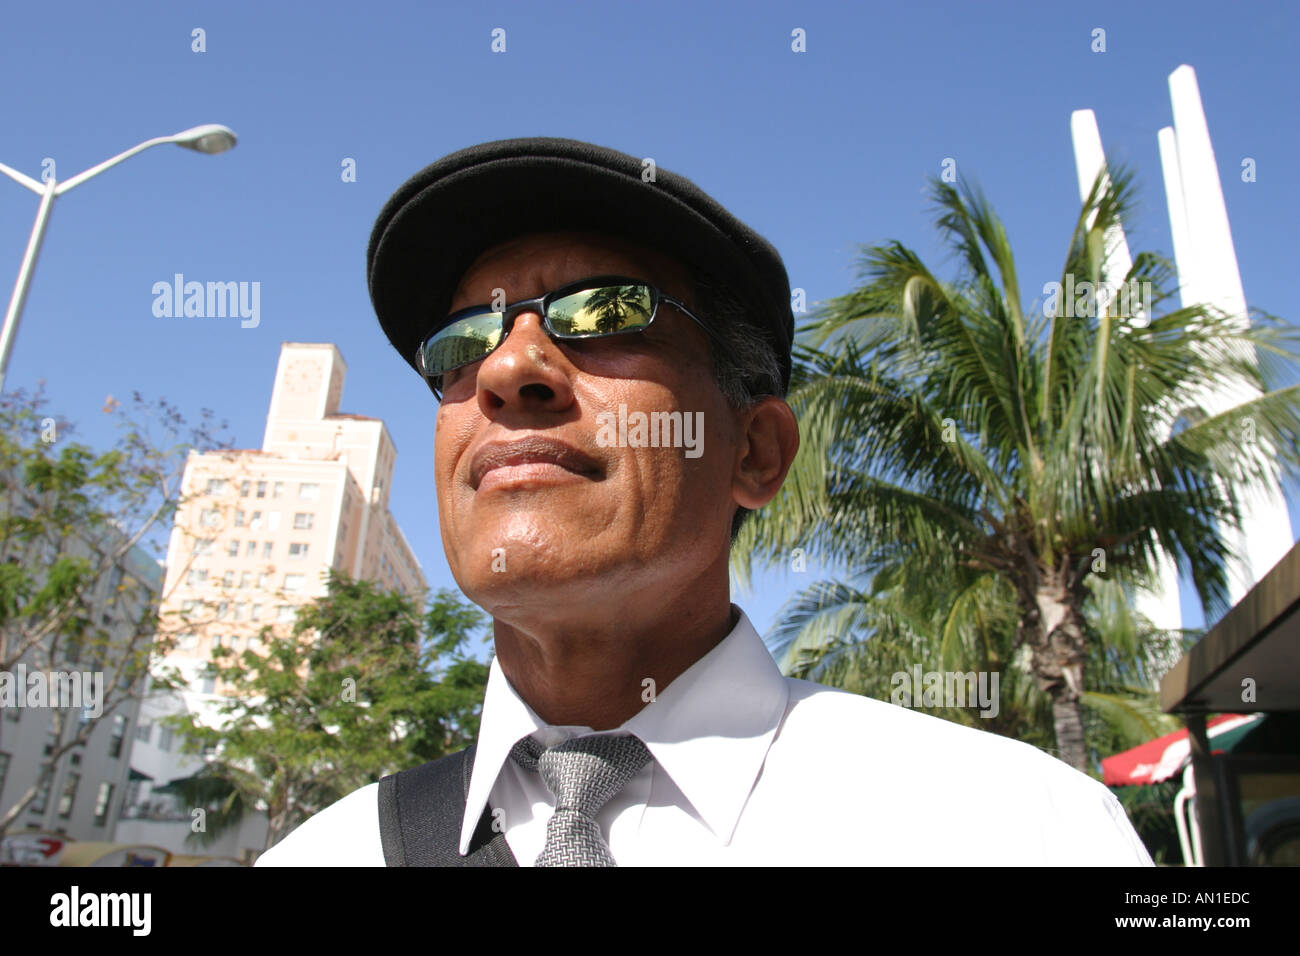 ff34a131be9 Miami Beach Florida Asian man sunglasses waits for public bus Stock ...